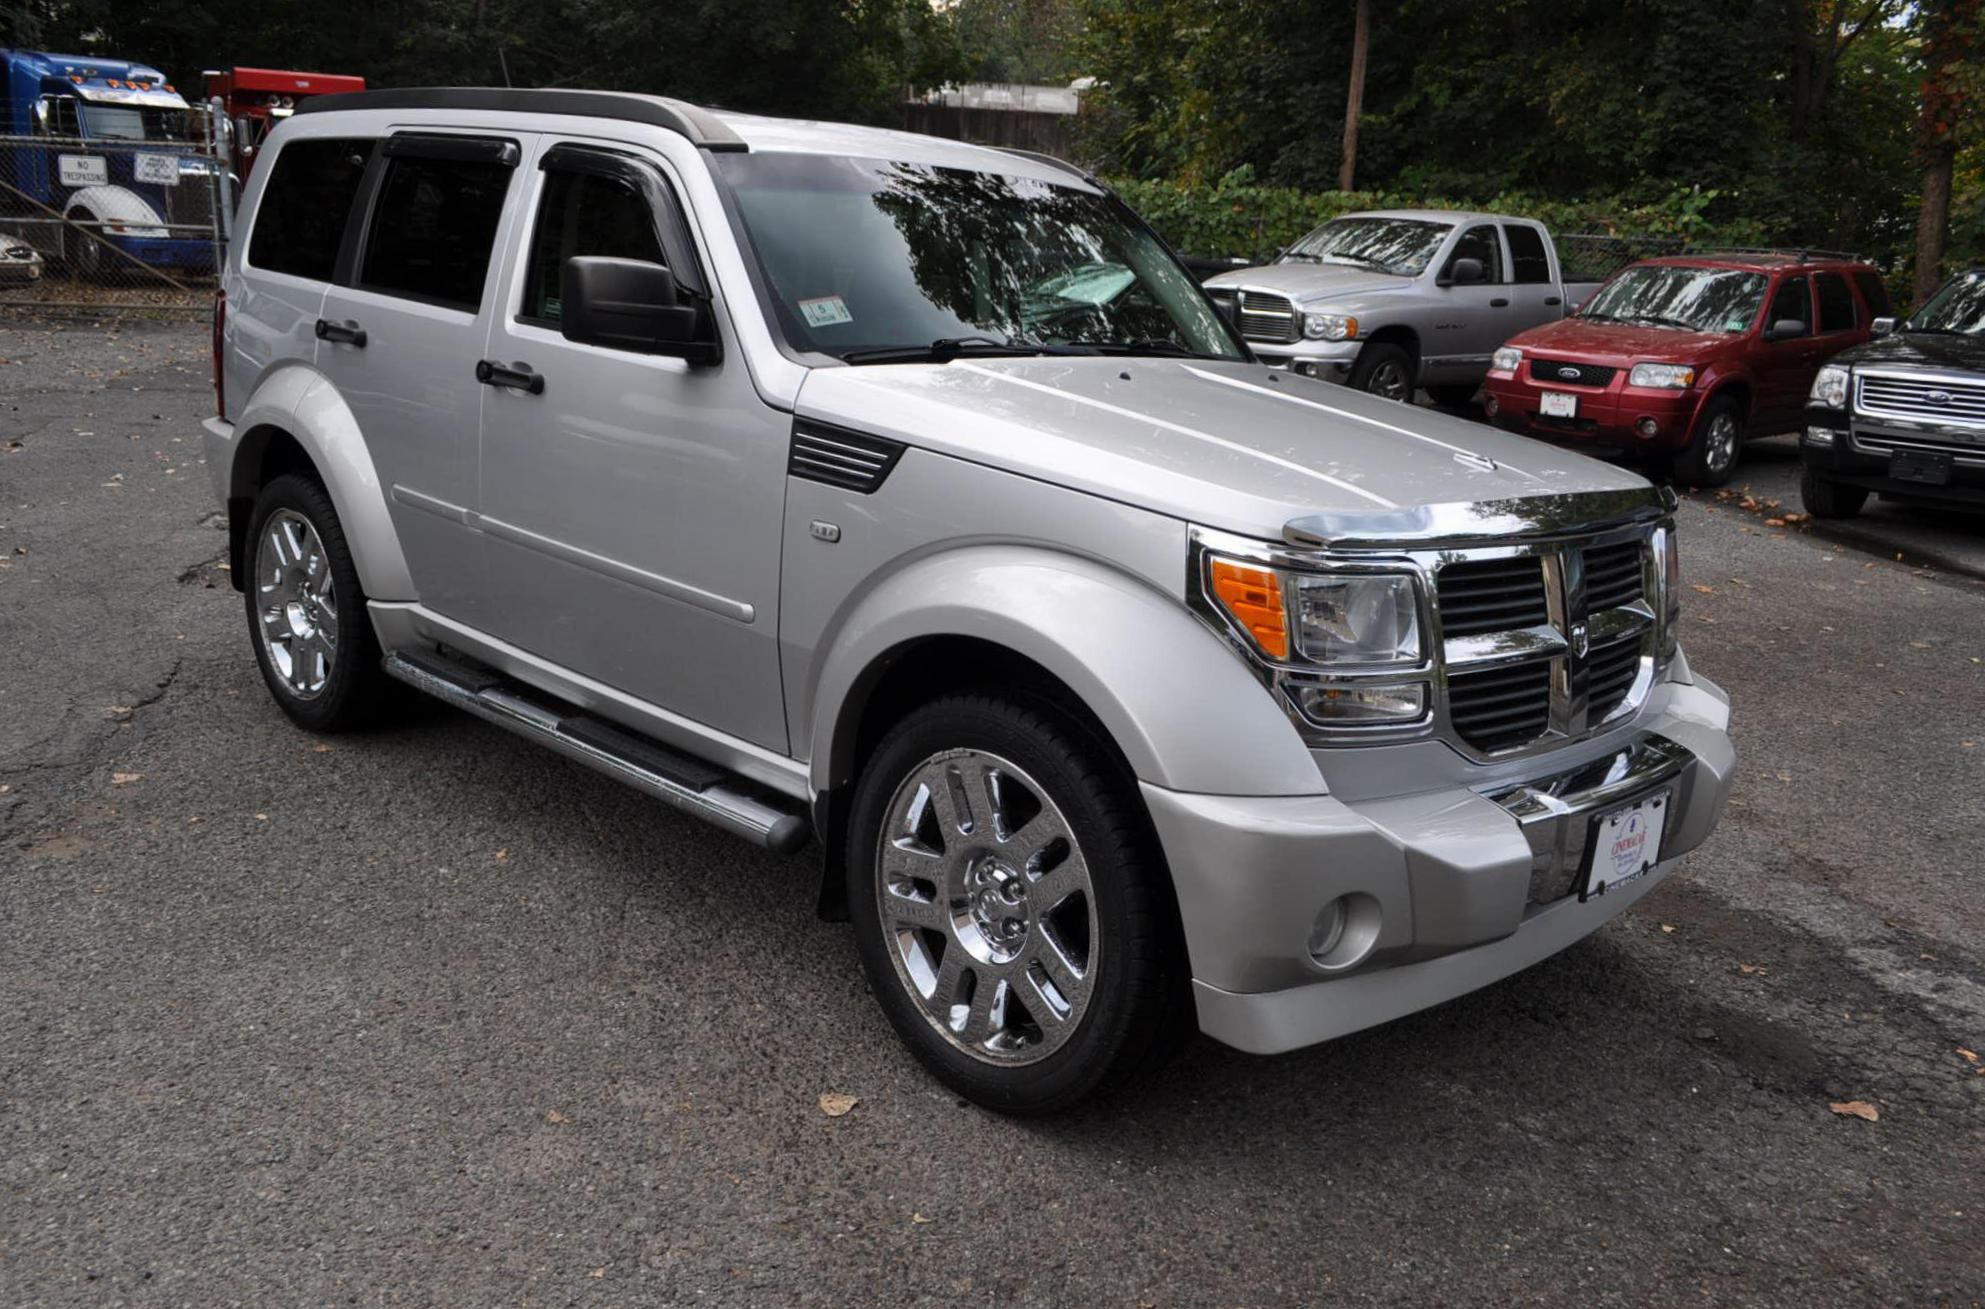 Dodge nitro photos and specs photo nitro dodge usa and 26 perfect photos of dodge nitro